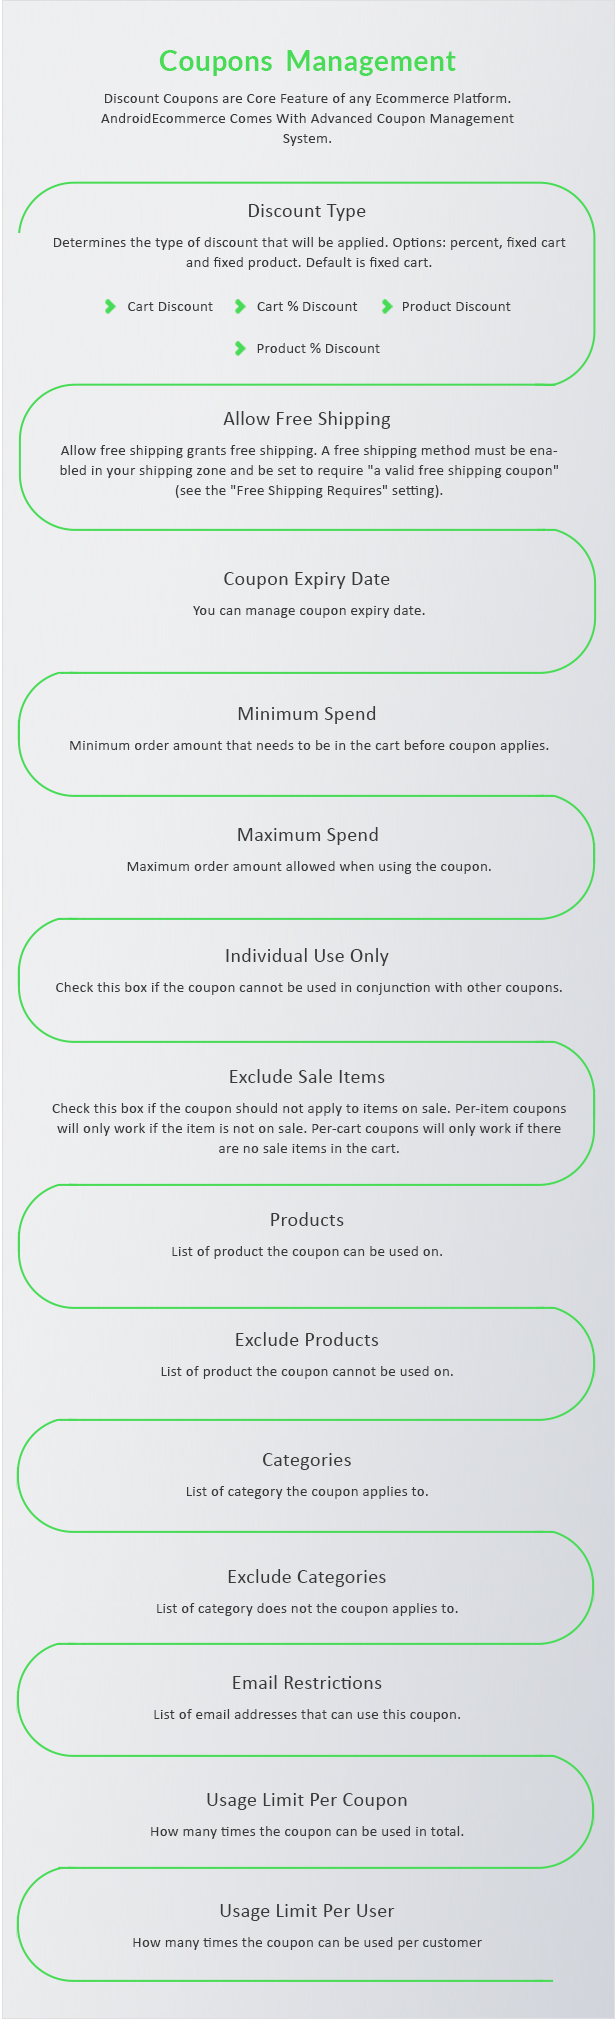 Android Ecommerce - Universal Android Ecommerce / Store Full Mobile App with Laravel CMS - 24